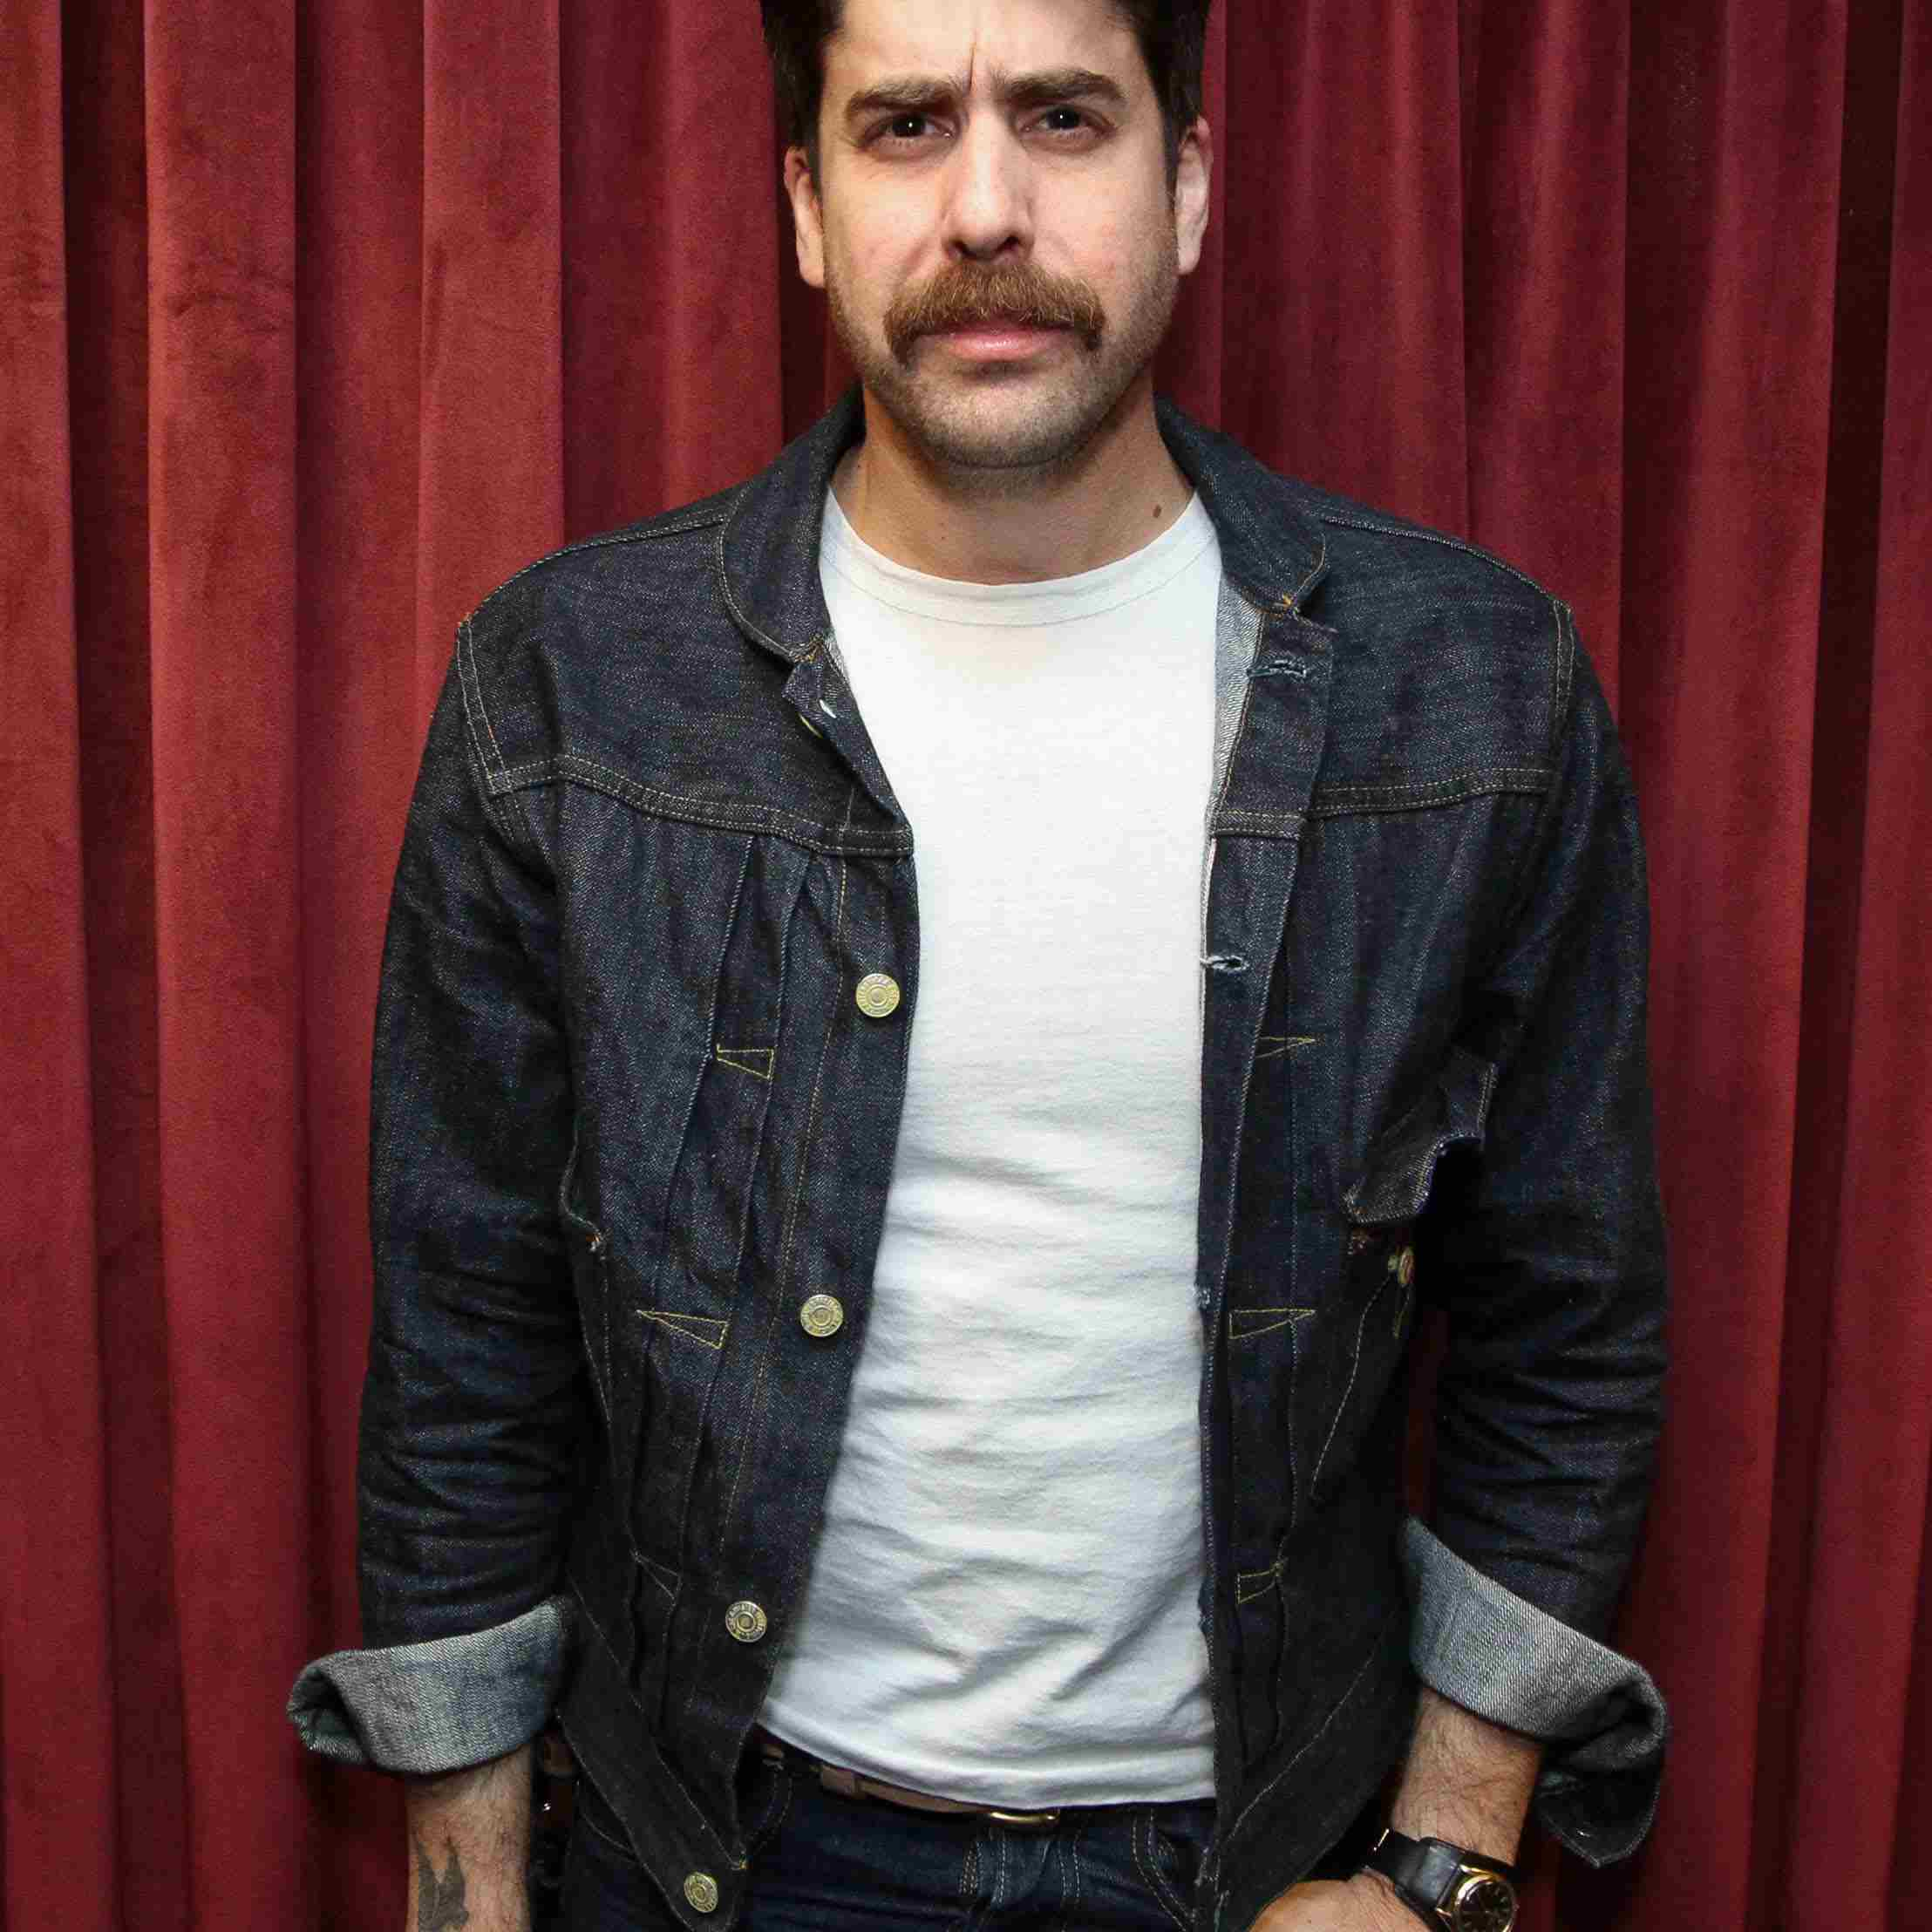 Adam Goldberg in jean jacket in front of red curtains.